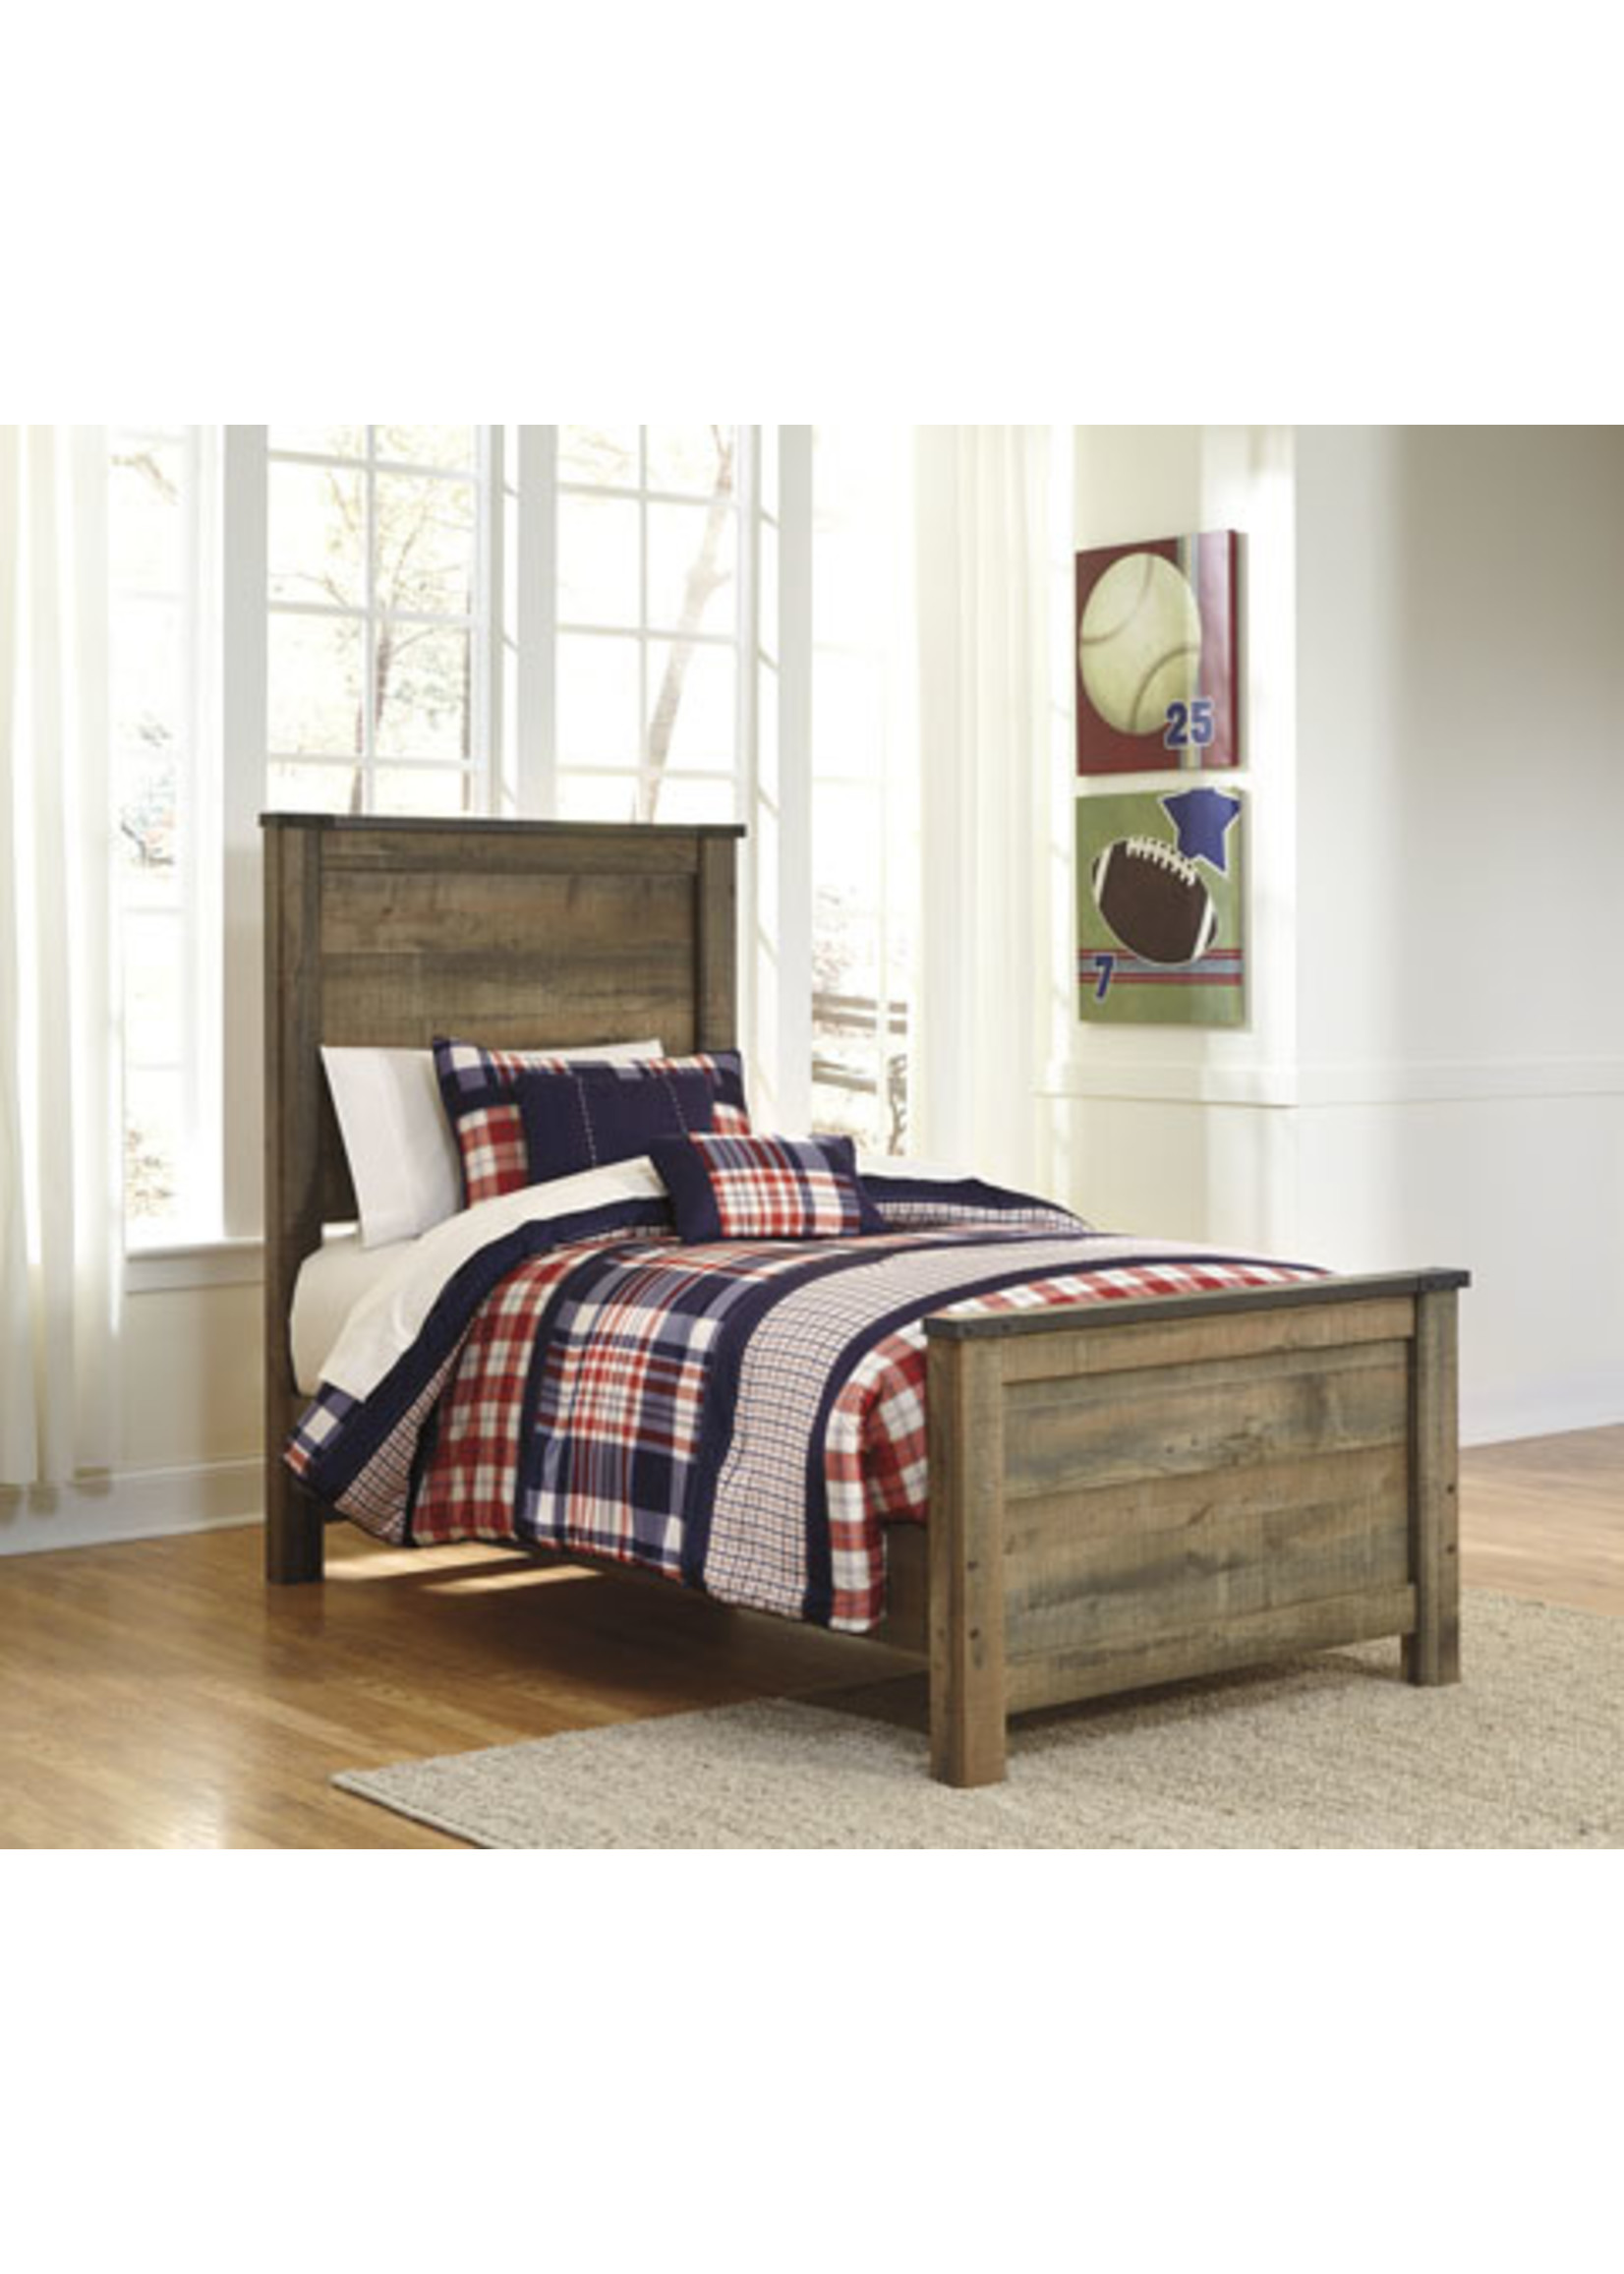 ASHLEY B446-52/53/83 3/3 TWIN PANEL BED TRINELL